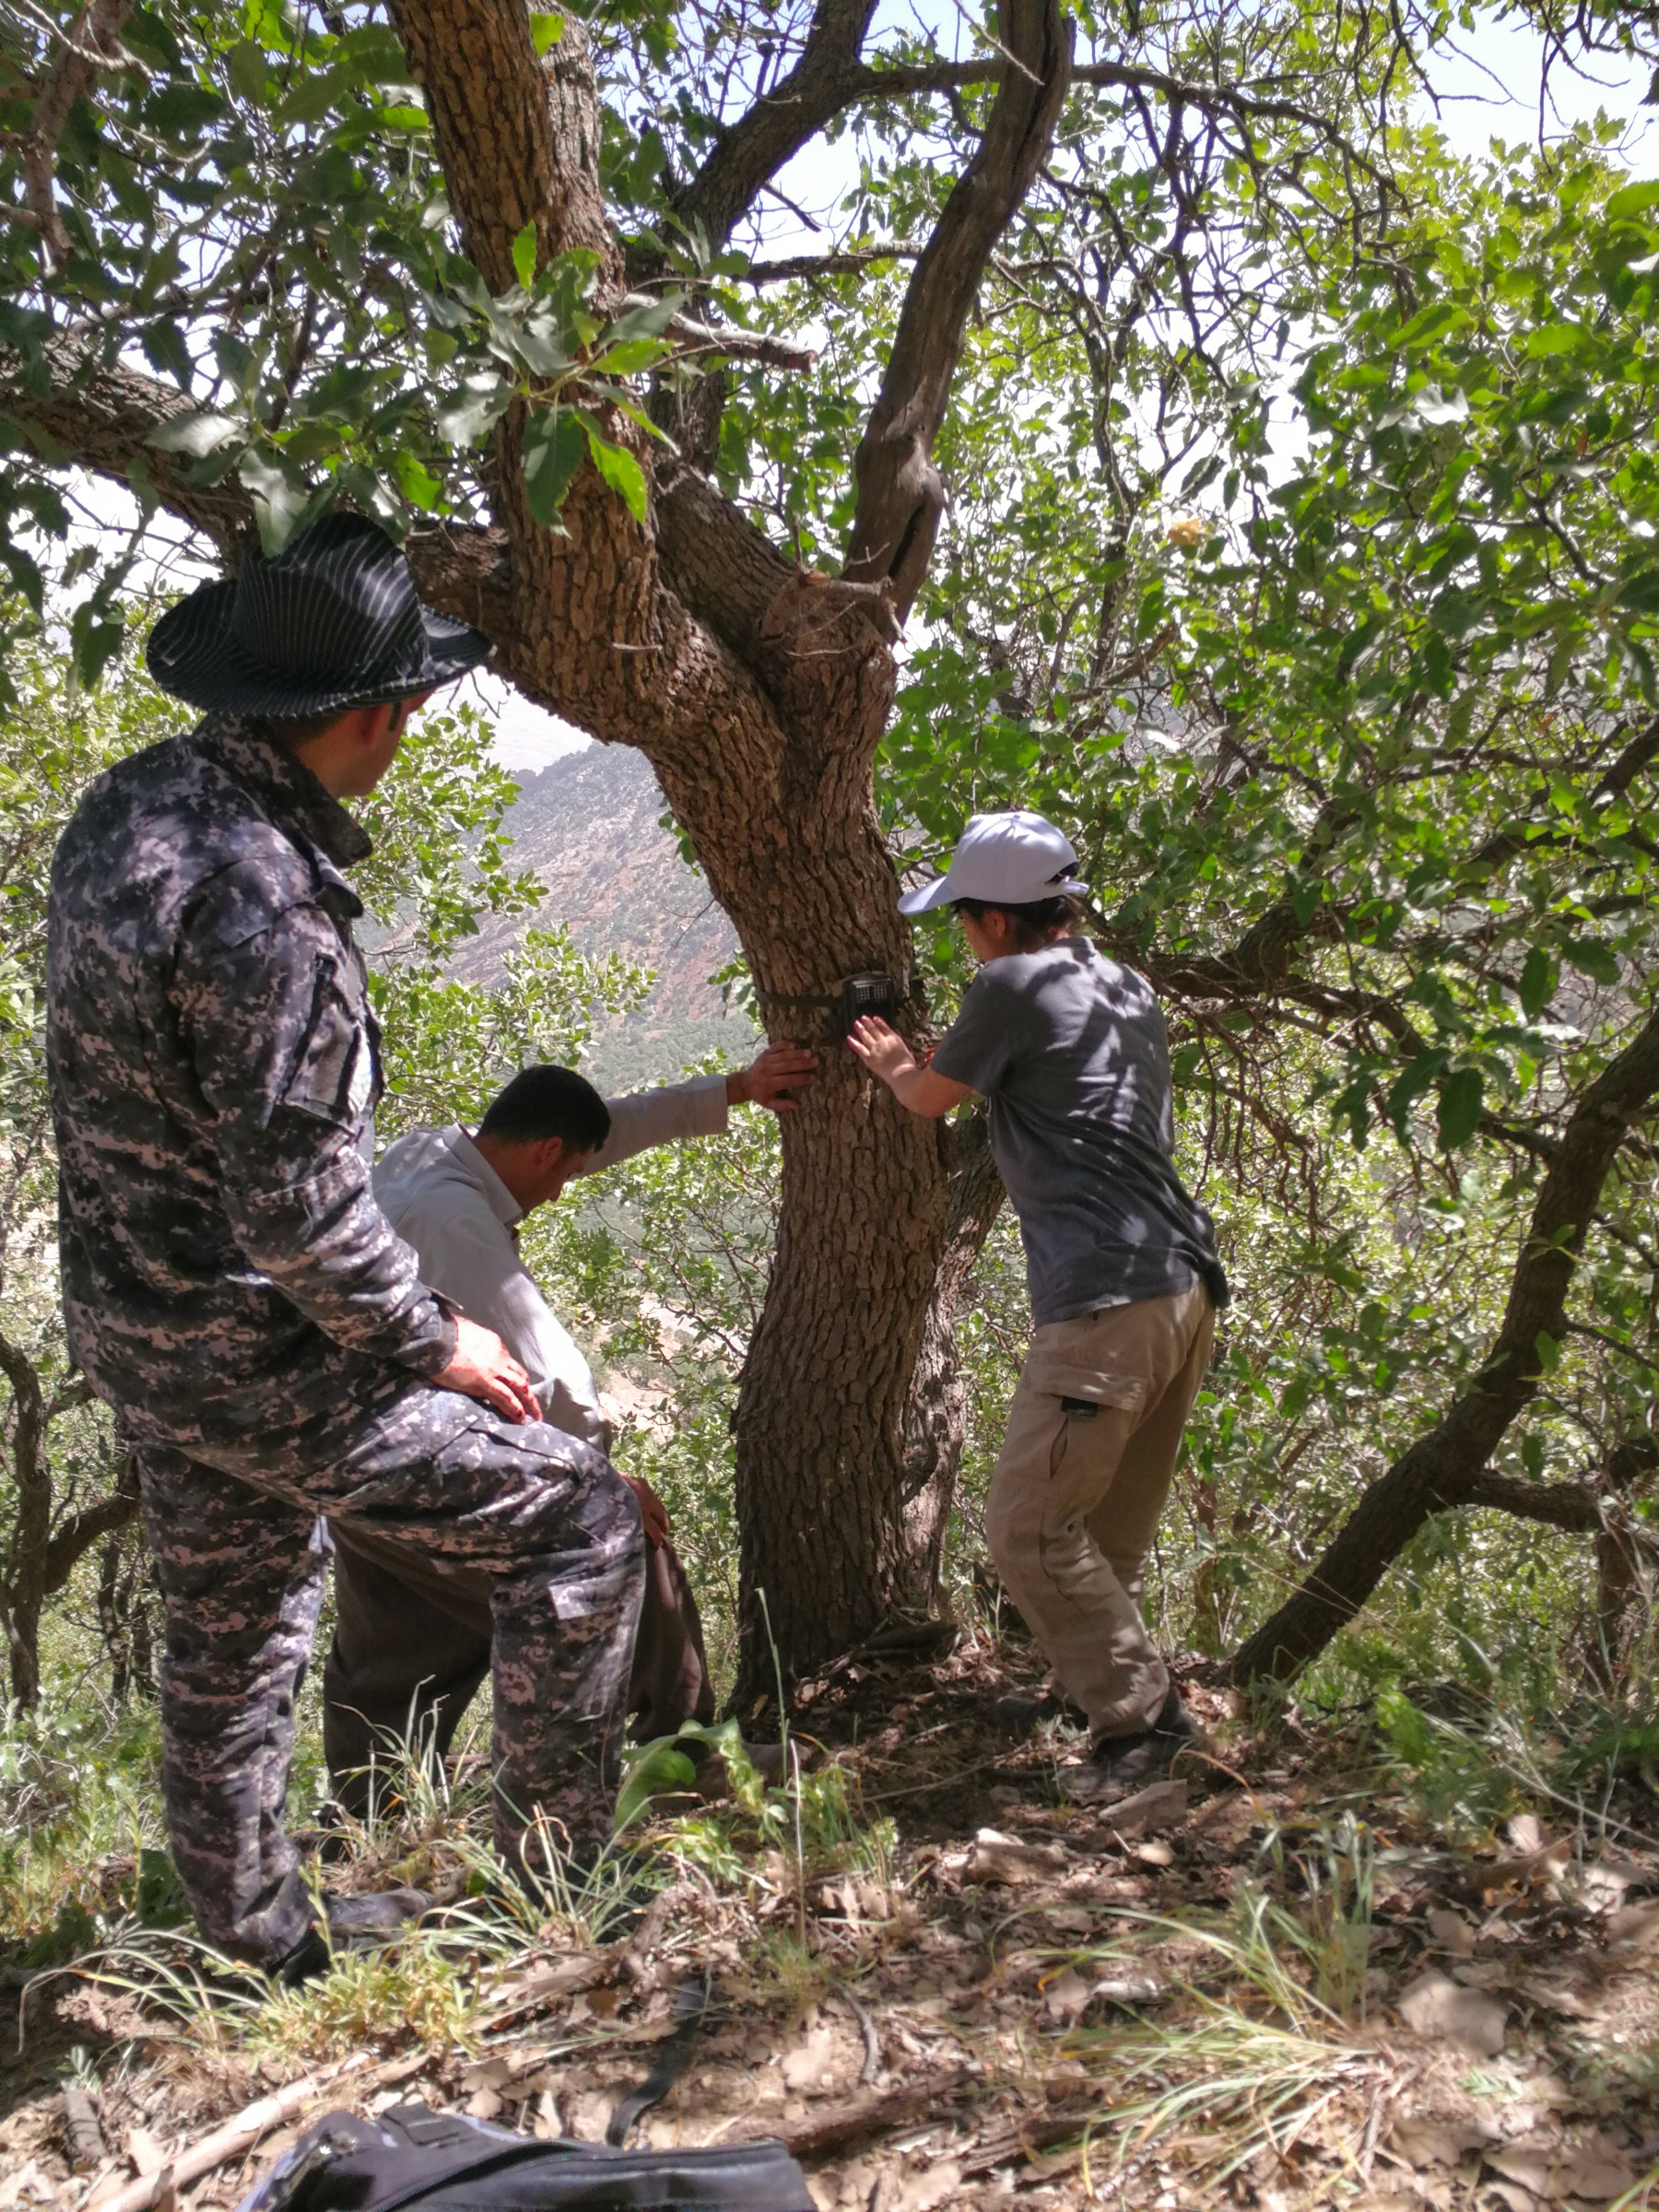 Hana Raza and others from Nature Iraq attach a camera trap to a tree in hopes of capturing the image of a member of Iraq's small but resilient population of Persian leopards. Photograph by Korsh Ararat